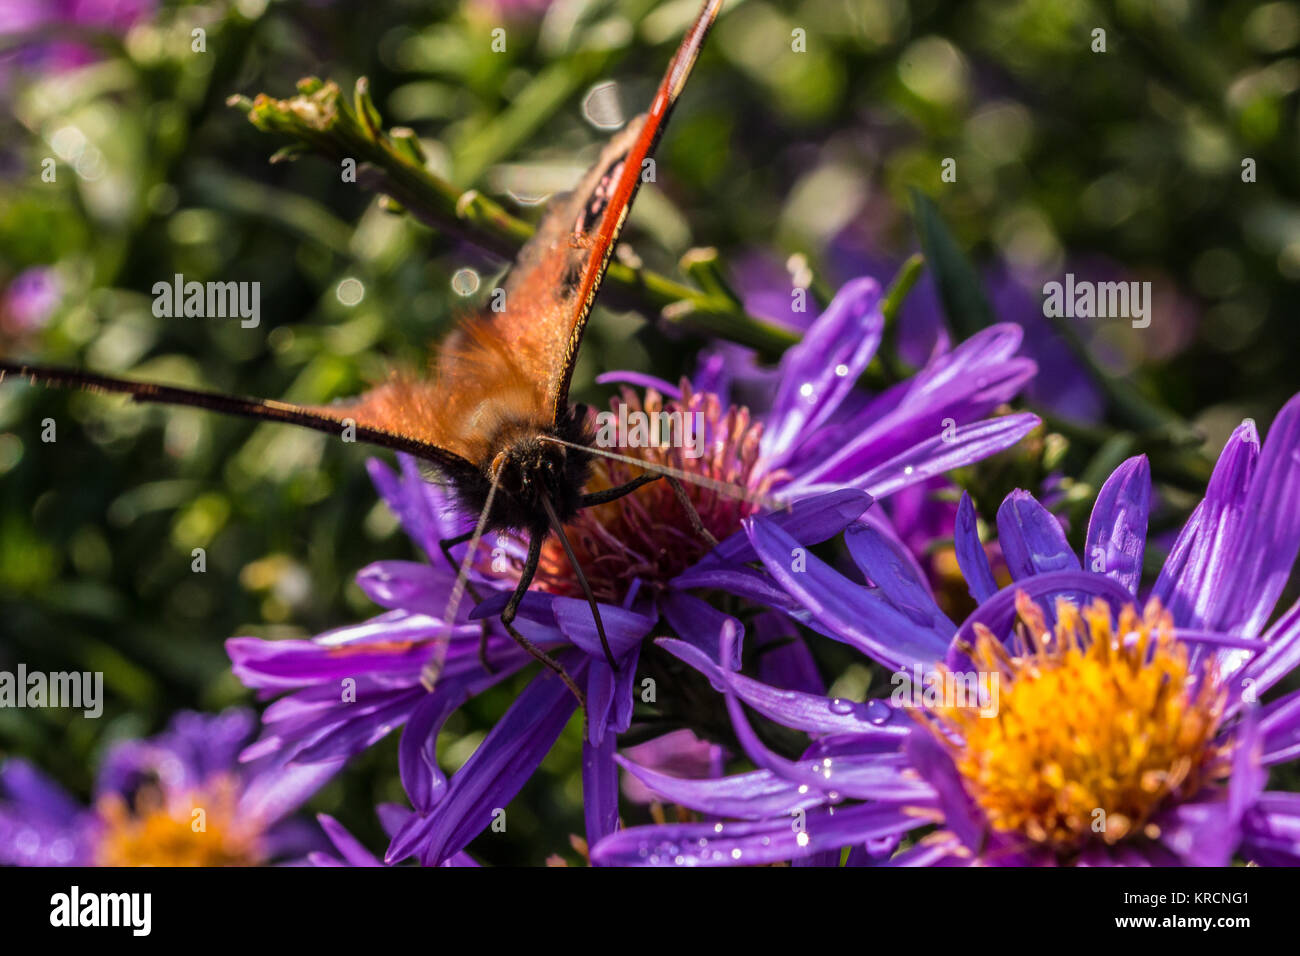 Butterfly on violet flower on the green field of the park - Stock Image